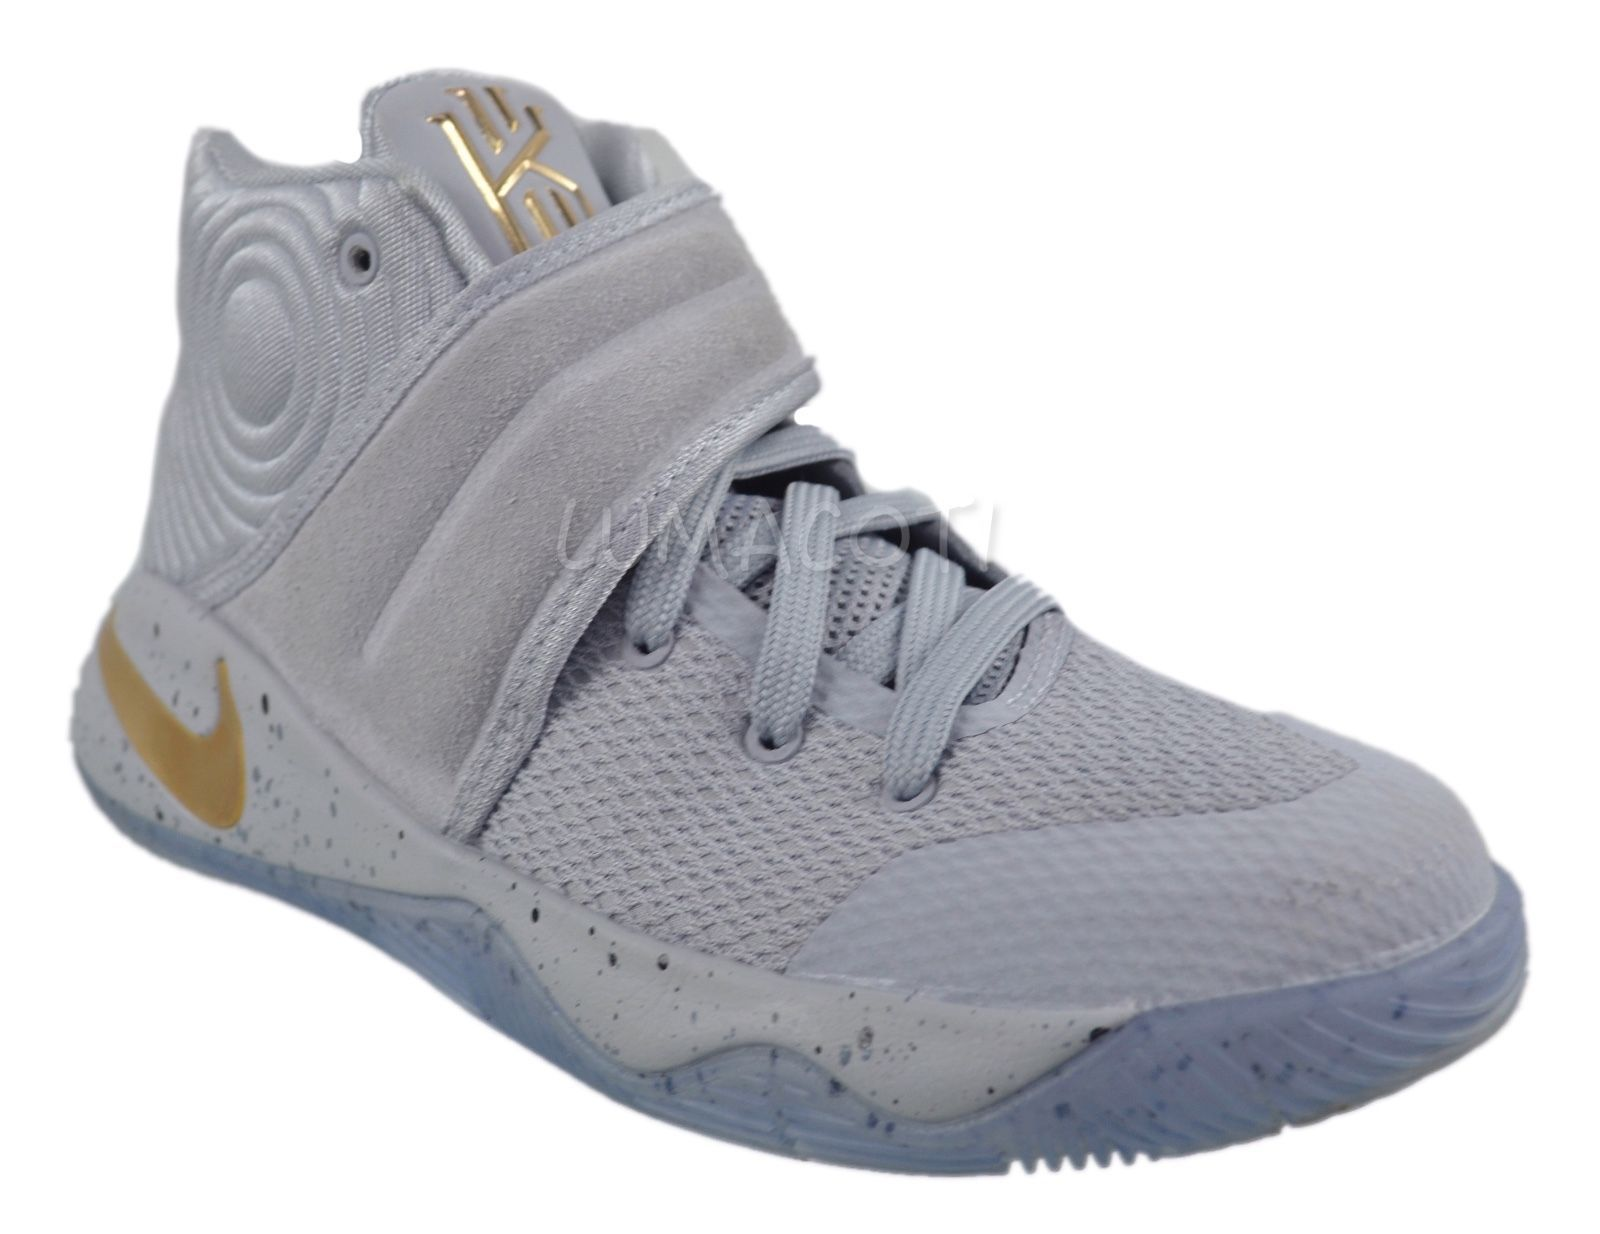 promo code 9a606 db16f ... Boys Grade School Nike Kyrie II and 50 similar items. S l1600